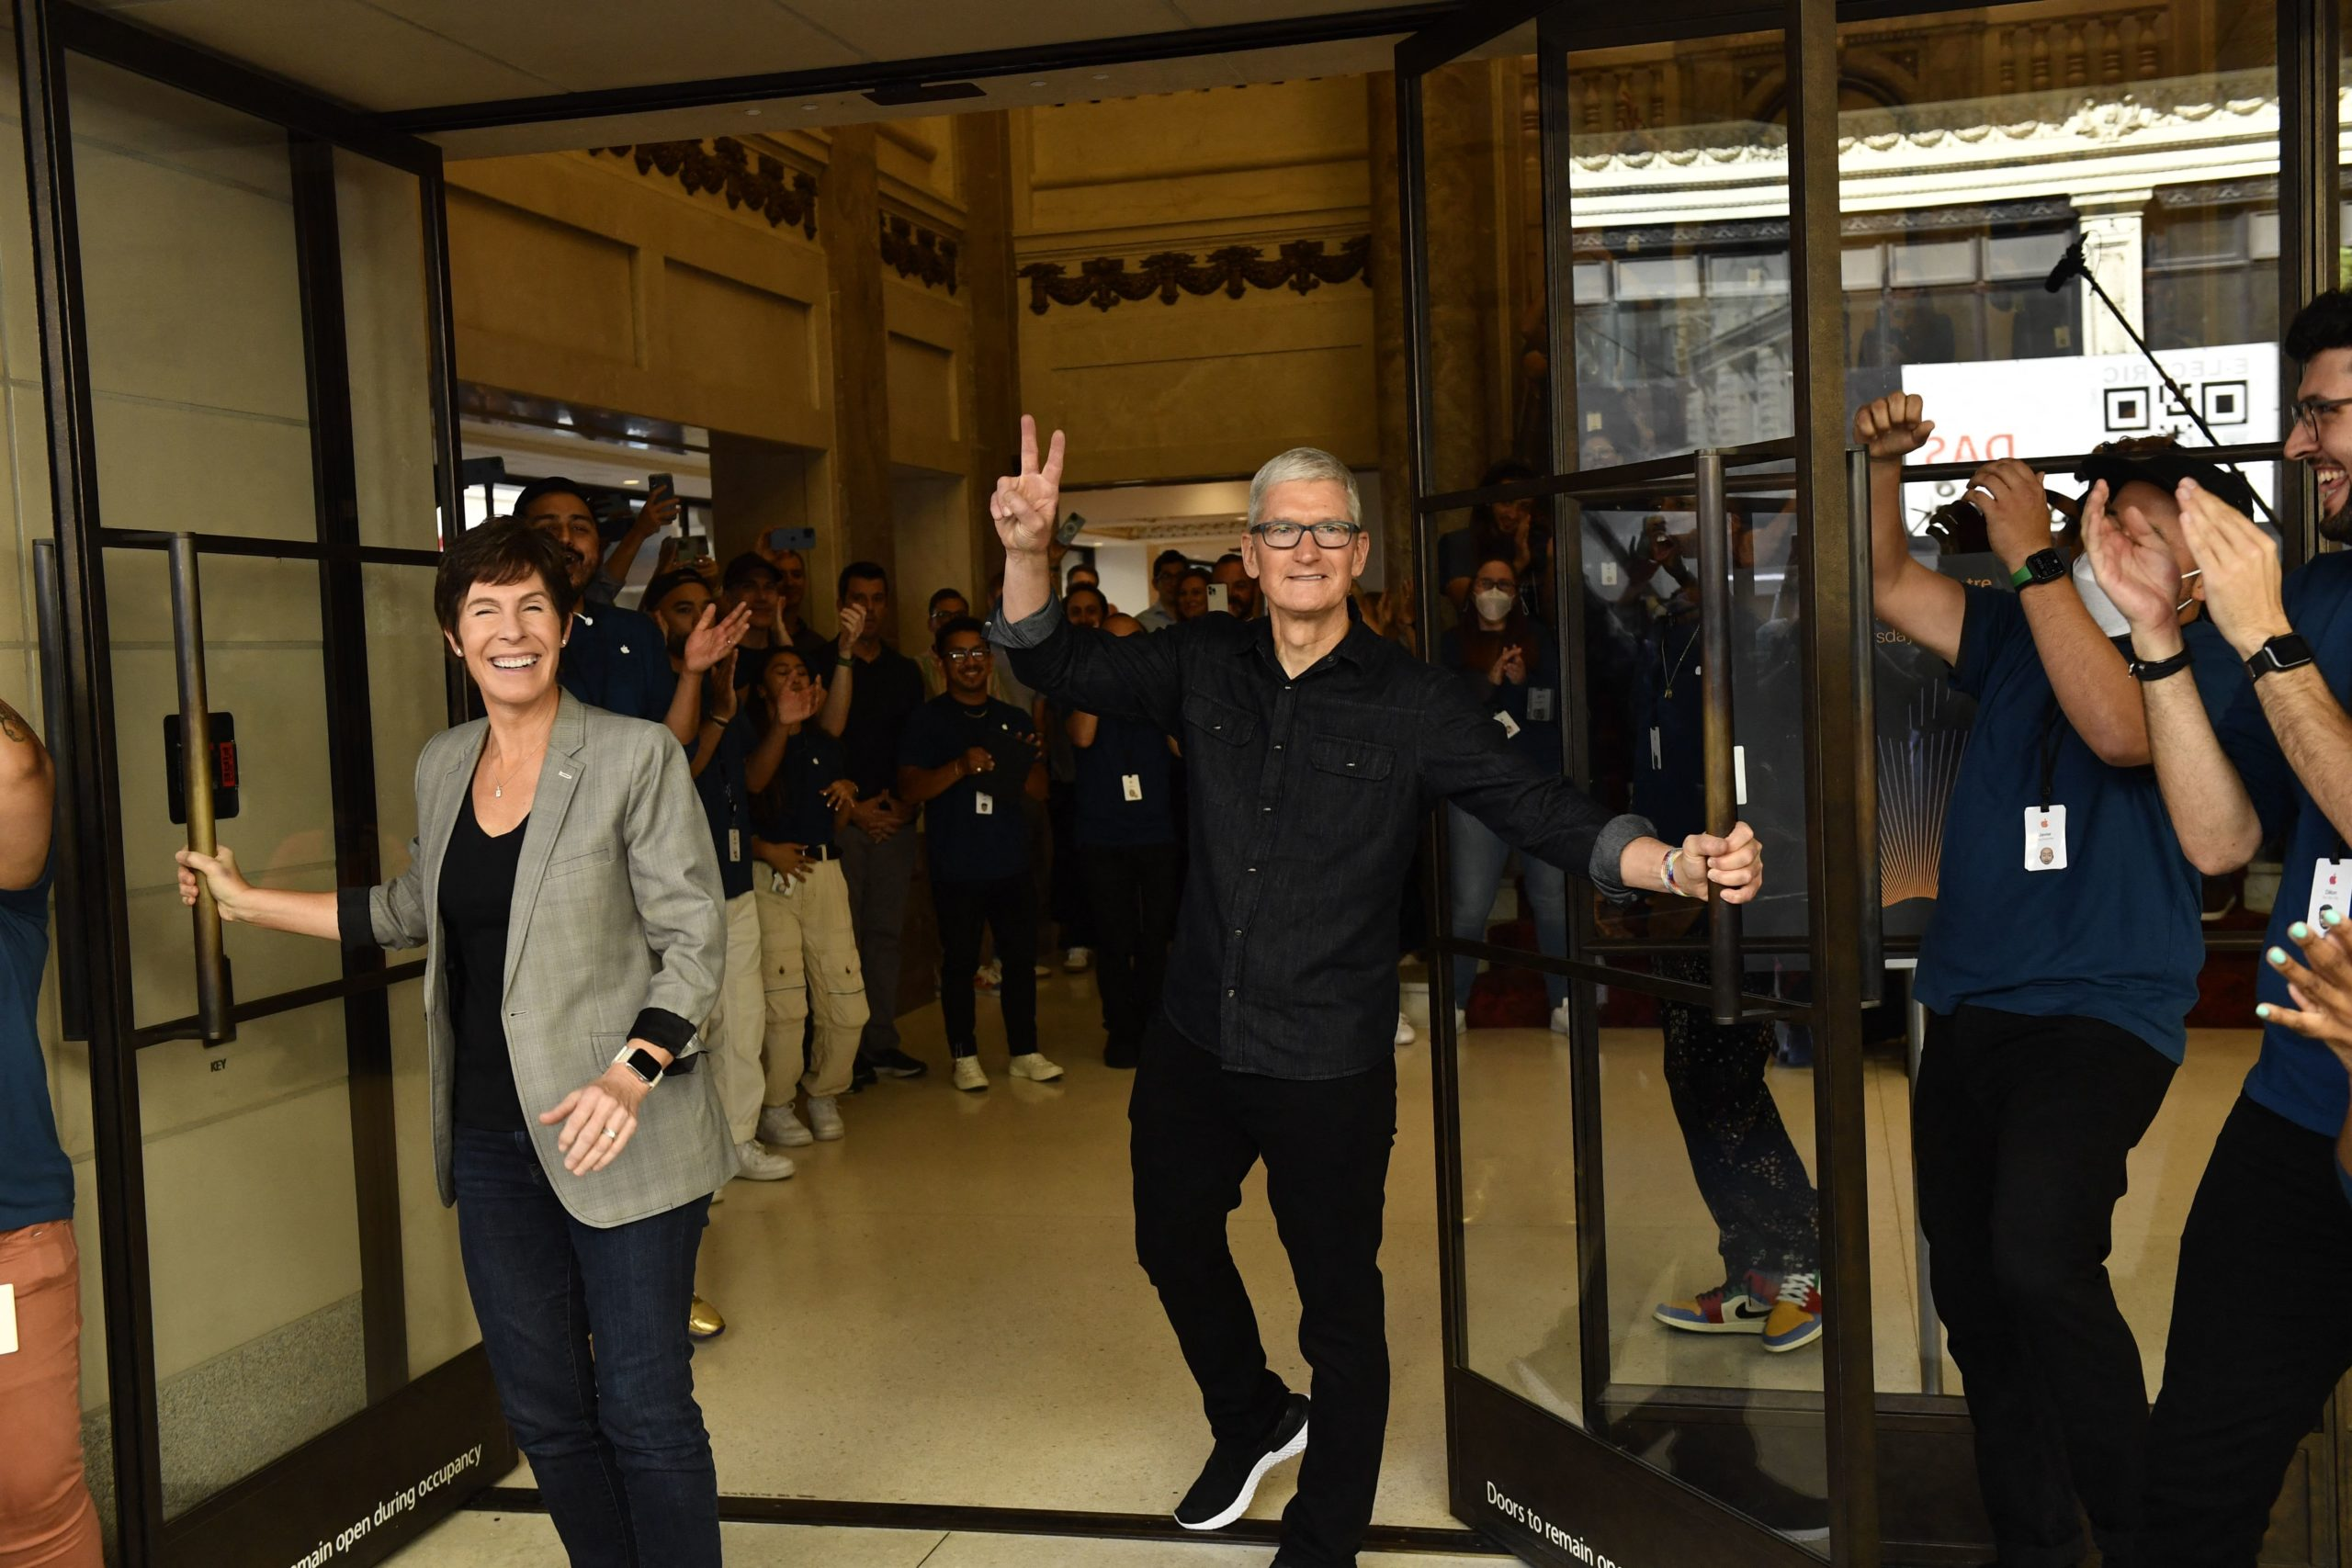 Apple CEO Tim Cook attends the opening of a Apple store on June 24 in Los Angeles, California. (Patrick T. Fallon/AFP via Getty Images)